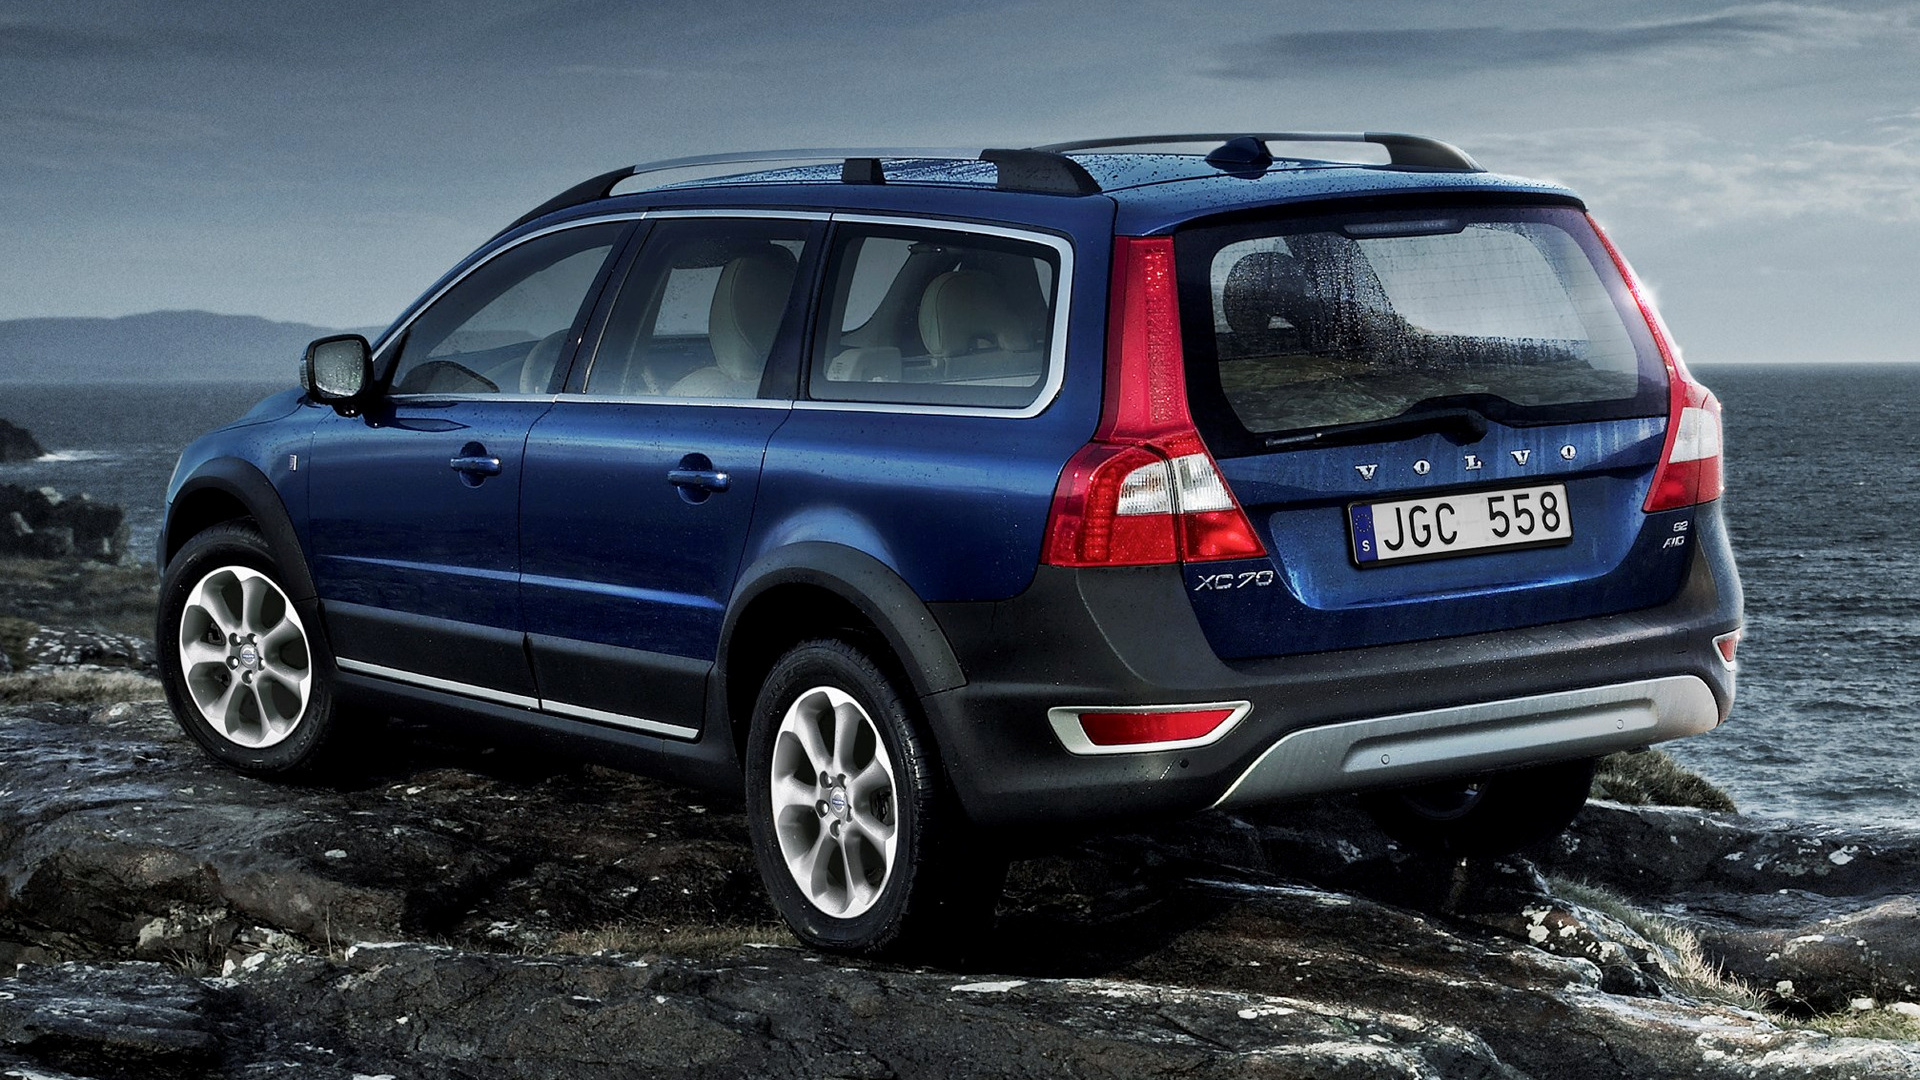 2008 Volvo Xc70 Ocean Race Wallpapers And Hd Images